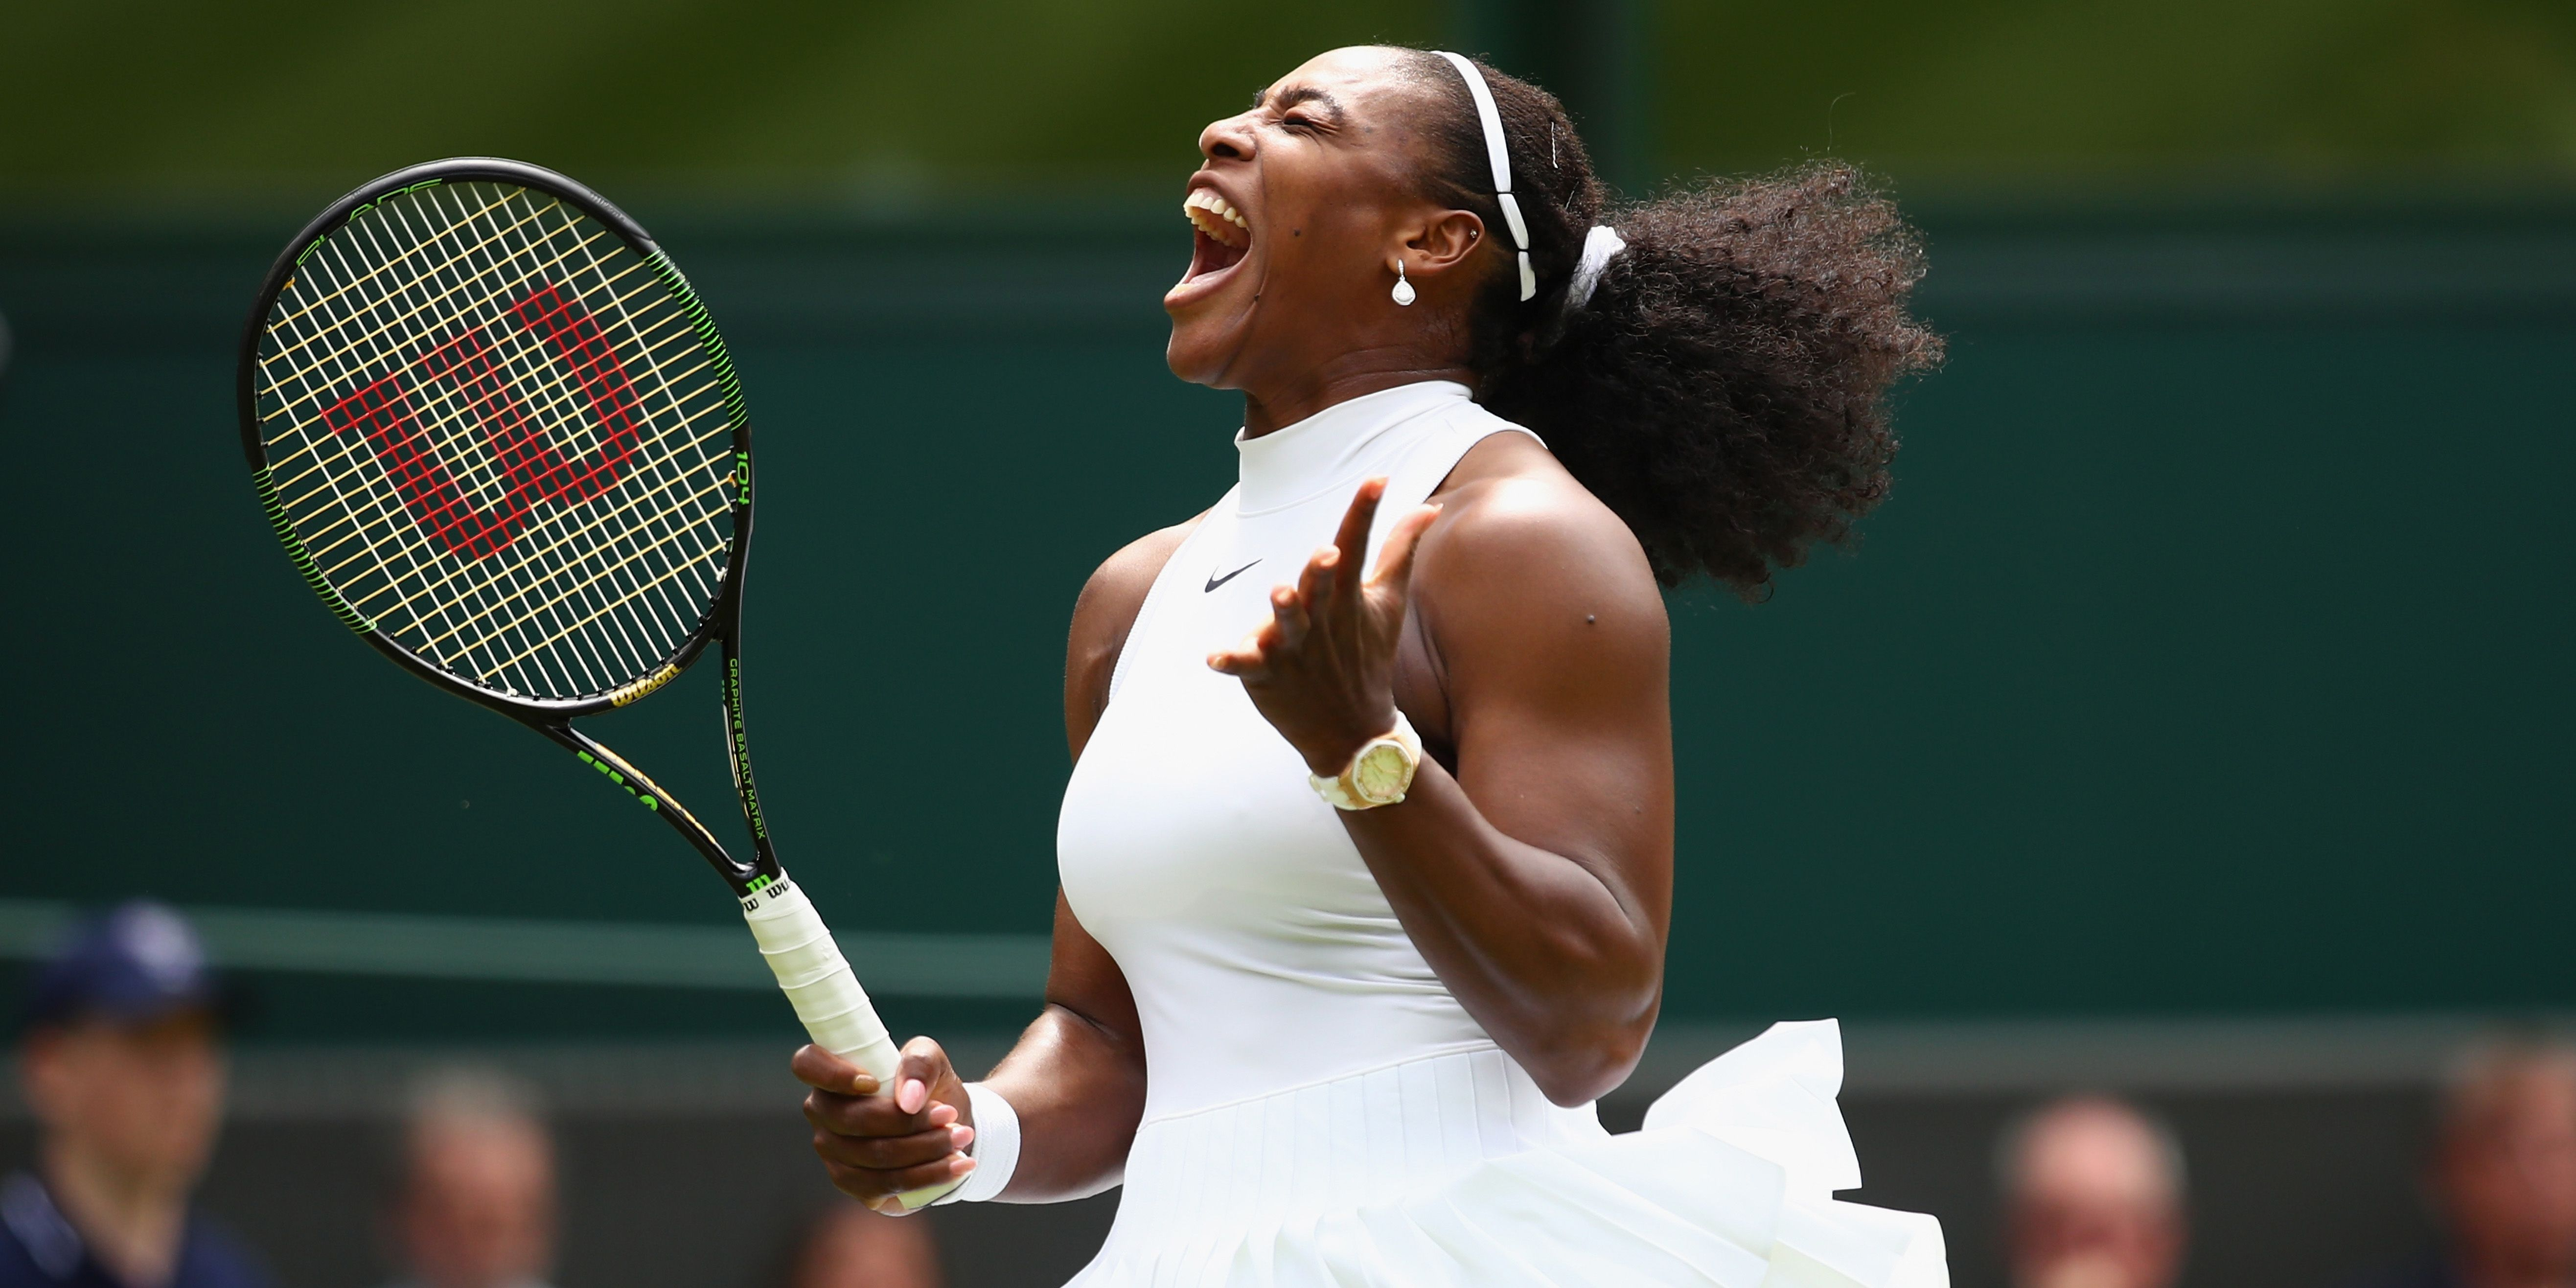 Serena Williams Playing Tennis While Pregnant Is All The Monday Motivation You Need